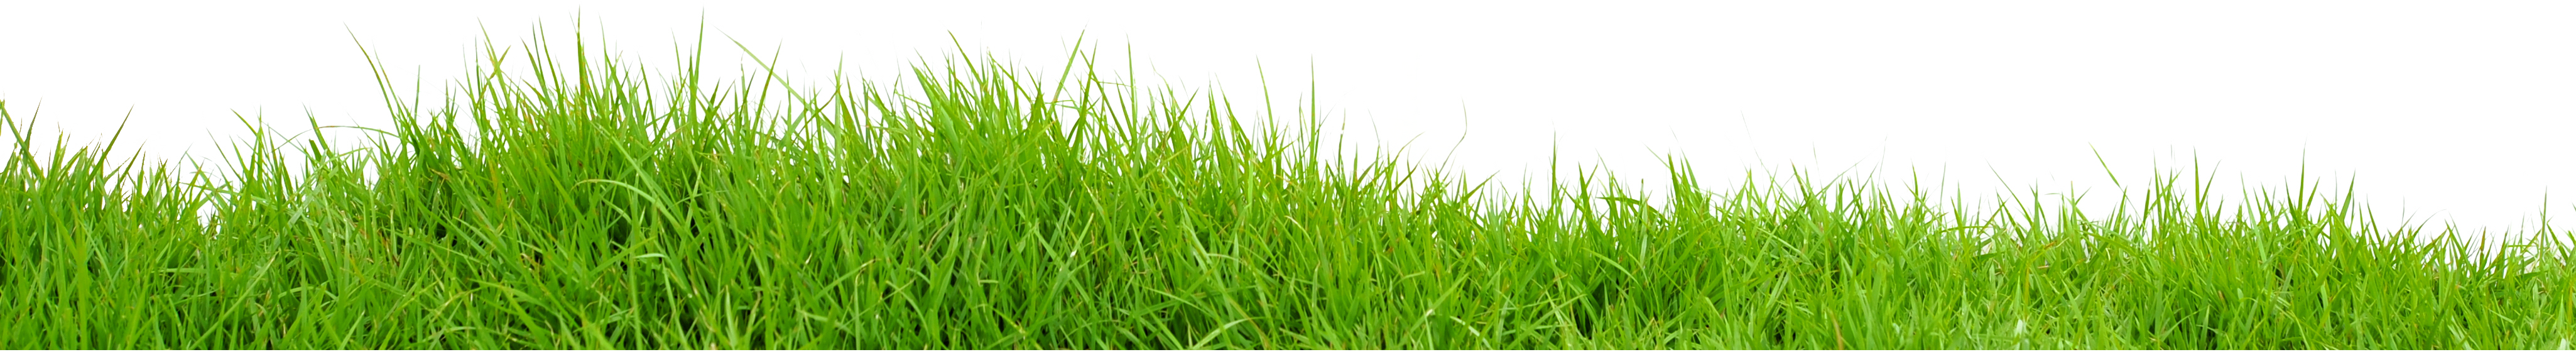 Textures nature elements vegetation dry grass dry grass - Grass Png Free Pictures Images Grass Png Download Free